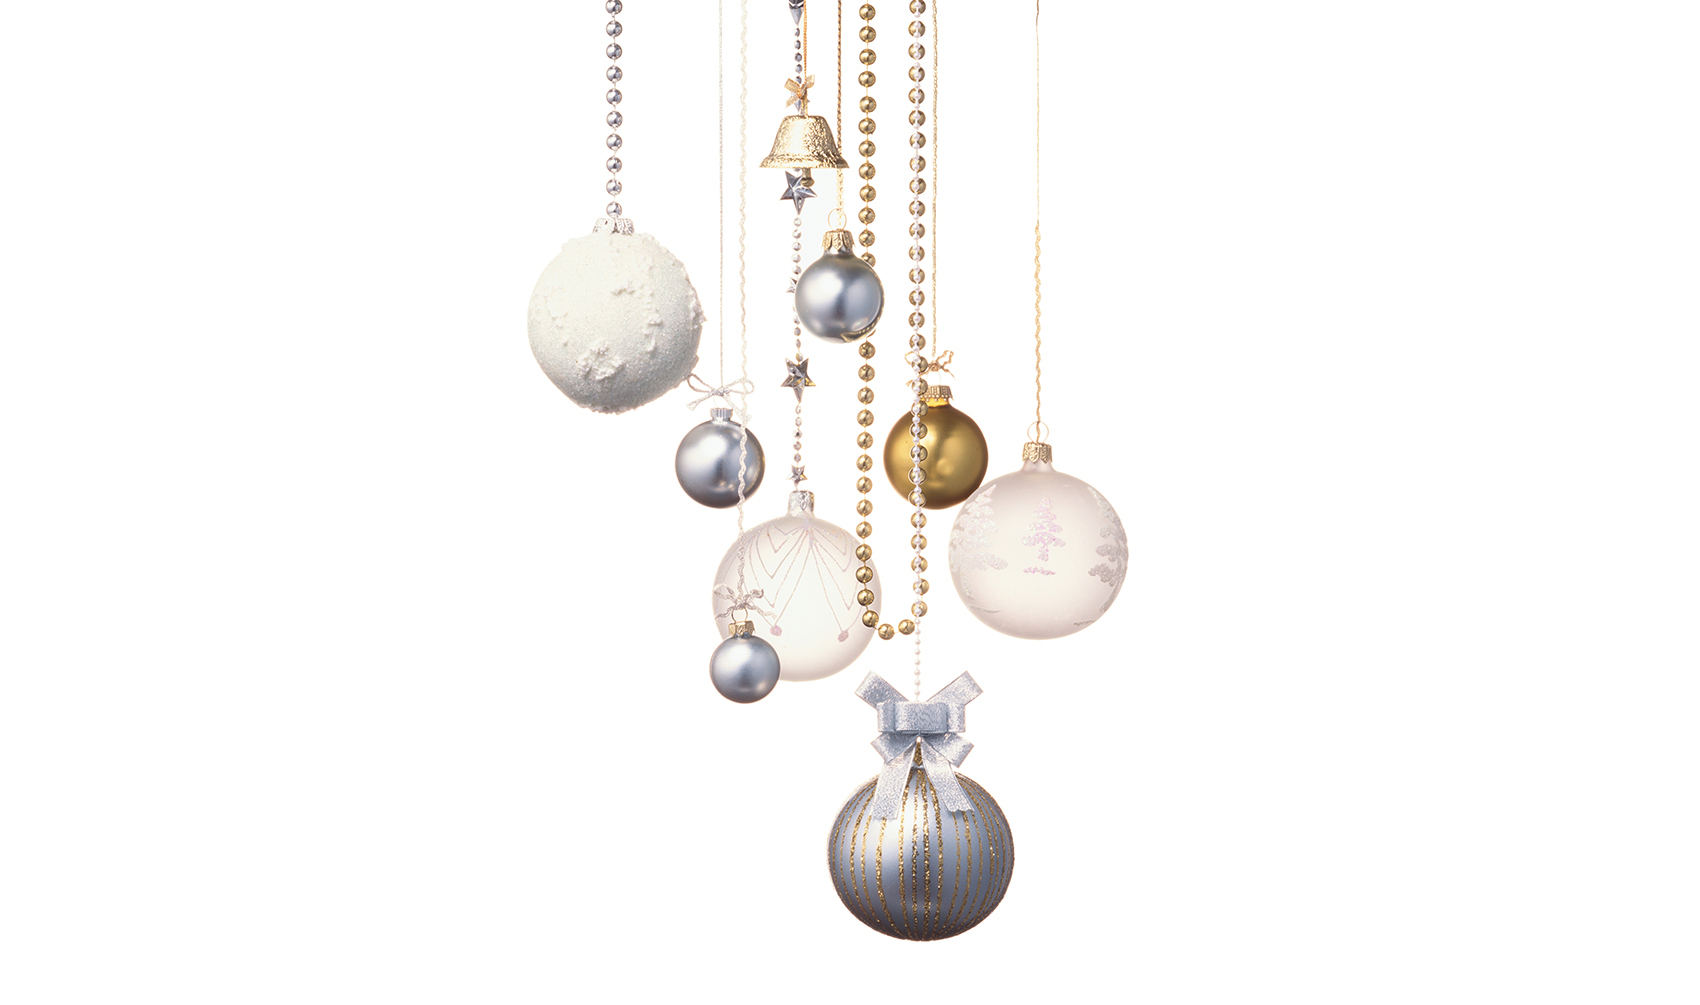 gold-silver-holiday-ornaments